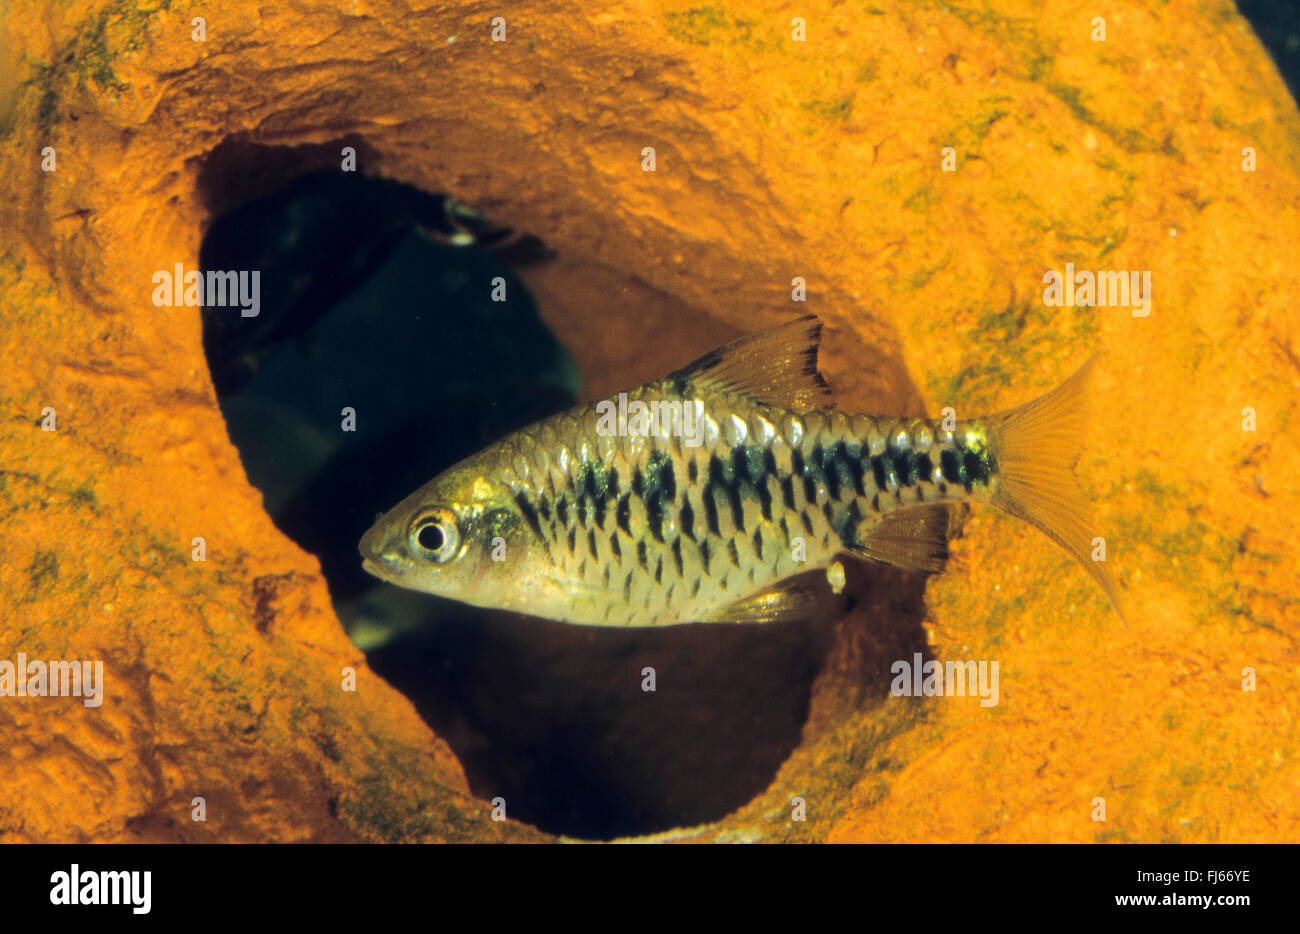 Checkered barb, Checkerboard, Island barb (Oliotius oligolepis, Puntius oligolepis, Capoeta oligolepis), swimming - Stock Image